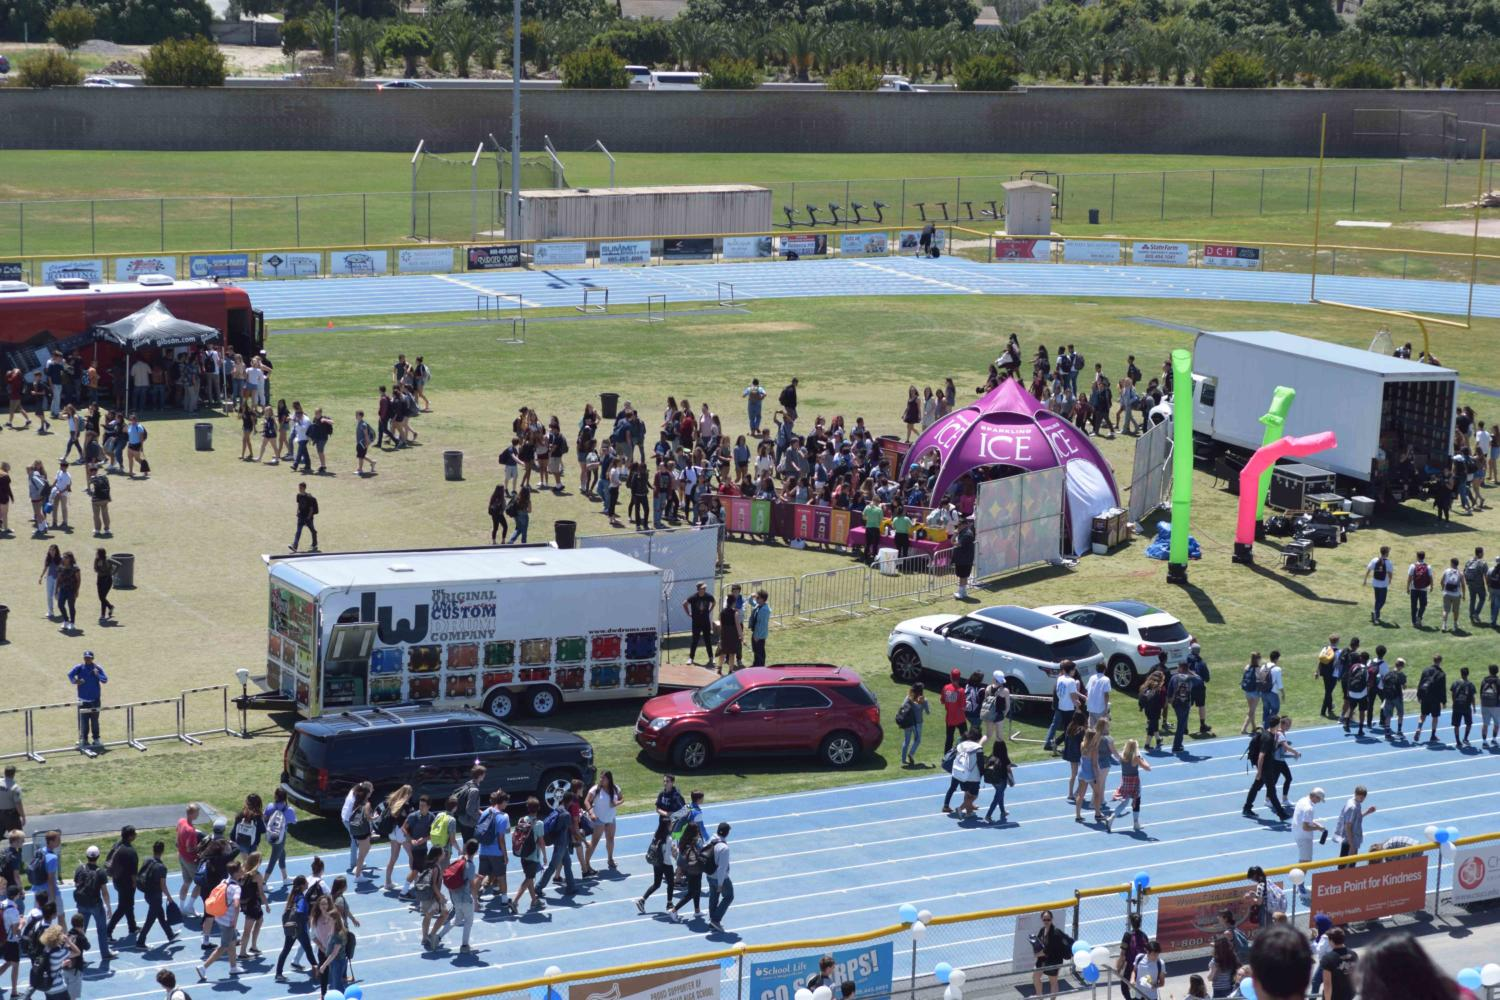 High School Nation set up trucks and tents on the football field for the event.